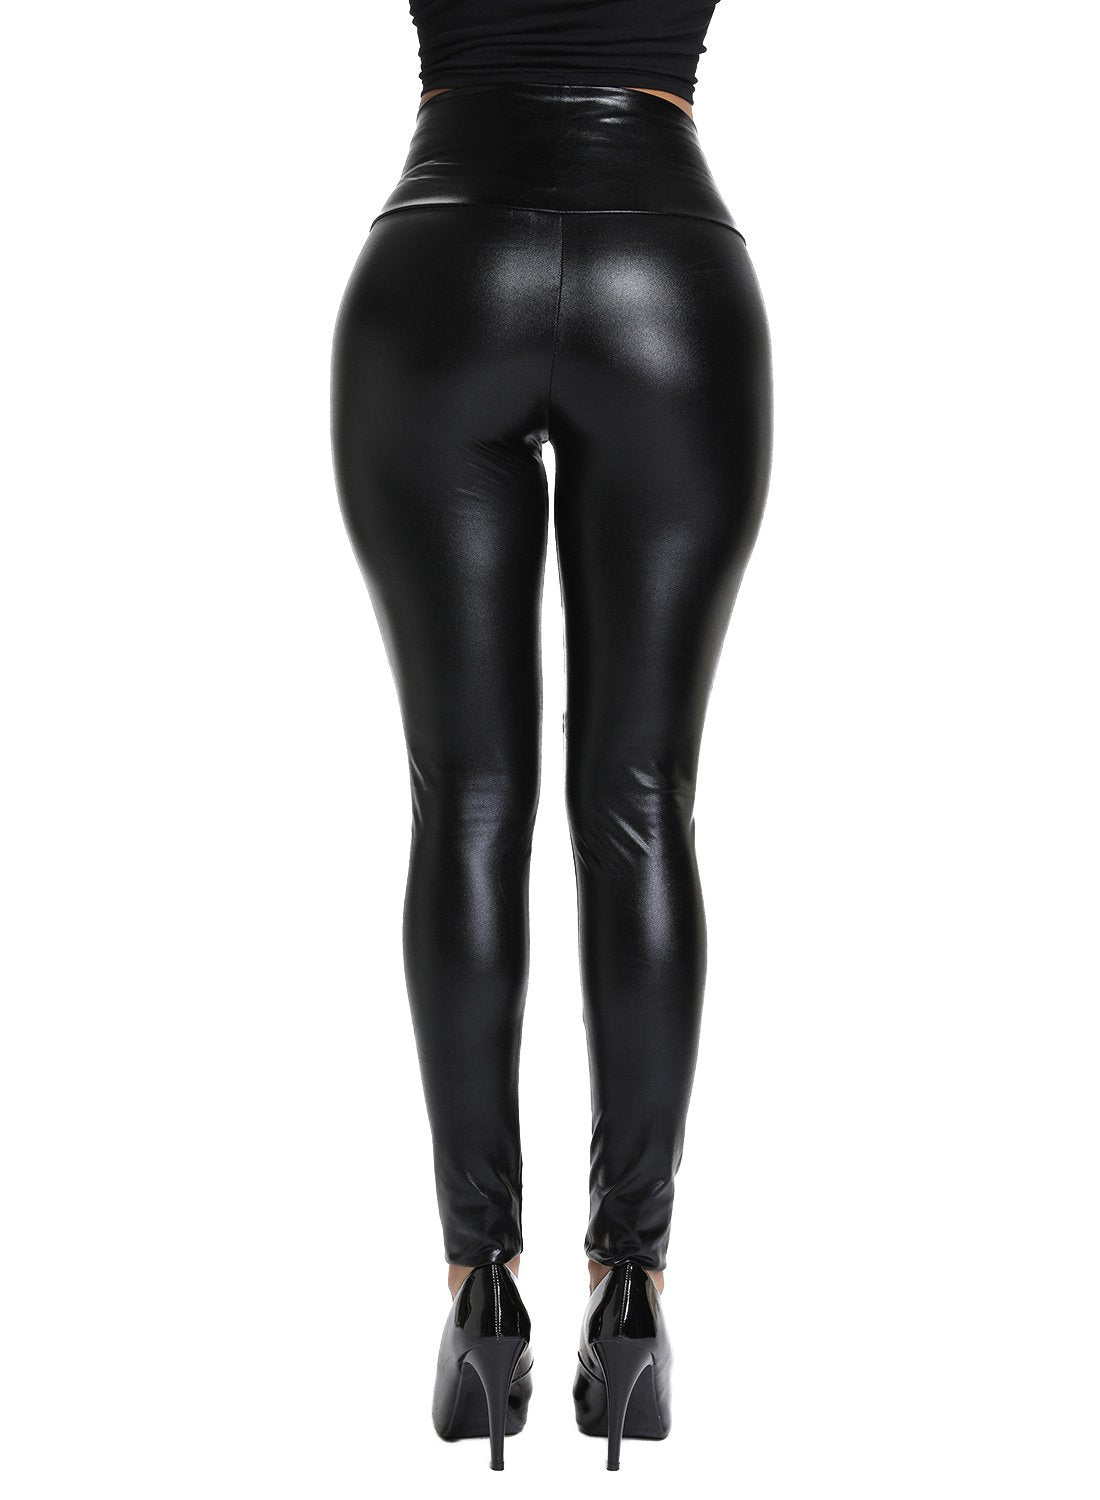 High Waist Slimmed Women Faux Leather Pants-JustFittoo